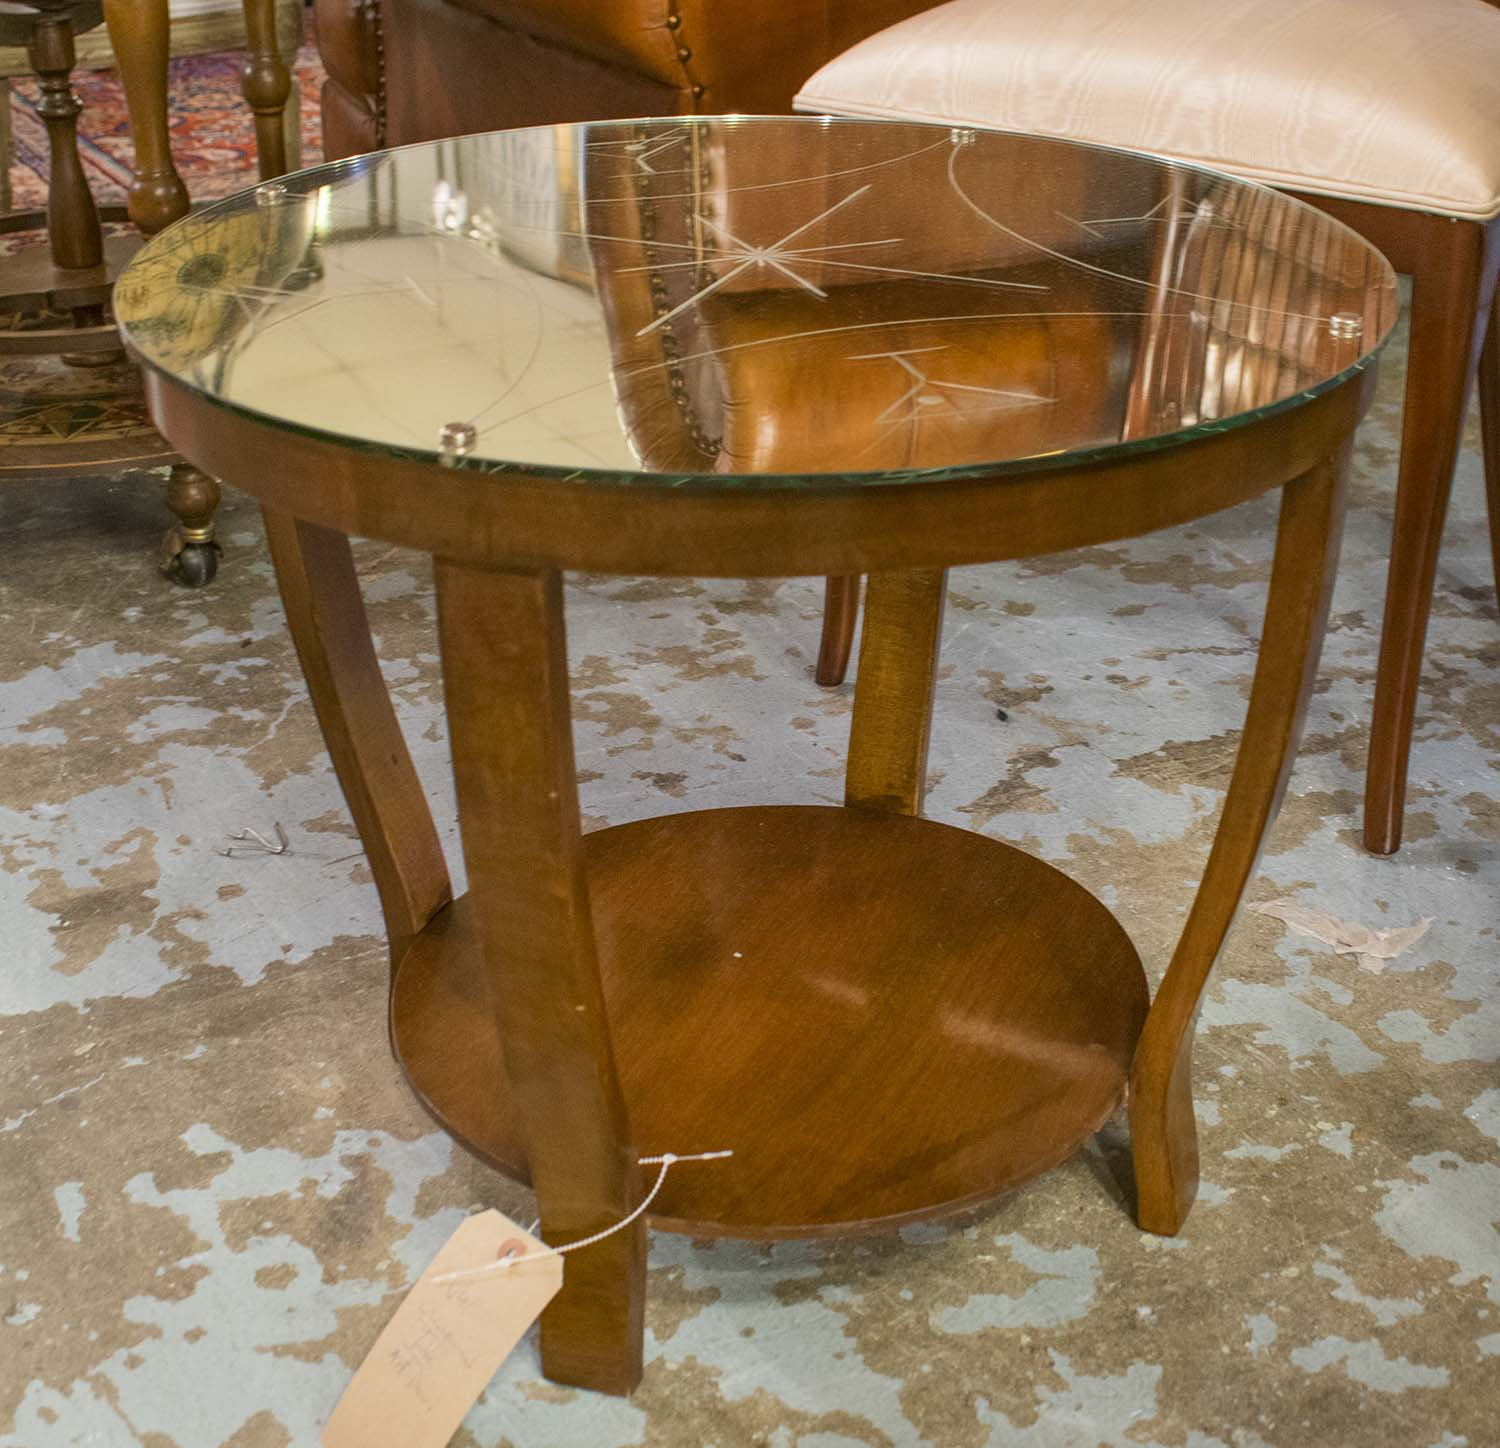 Occasional Table Art Deco Circular Walnut With Cocktail Glass  # Muebles Fomento